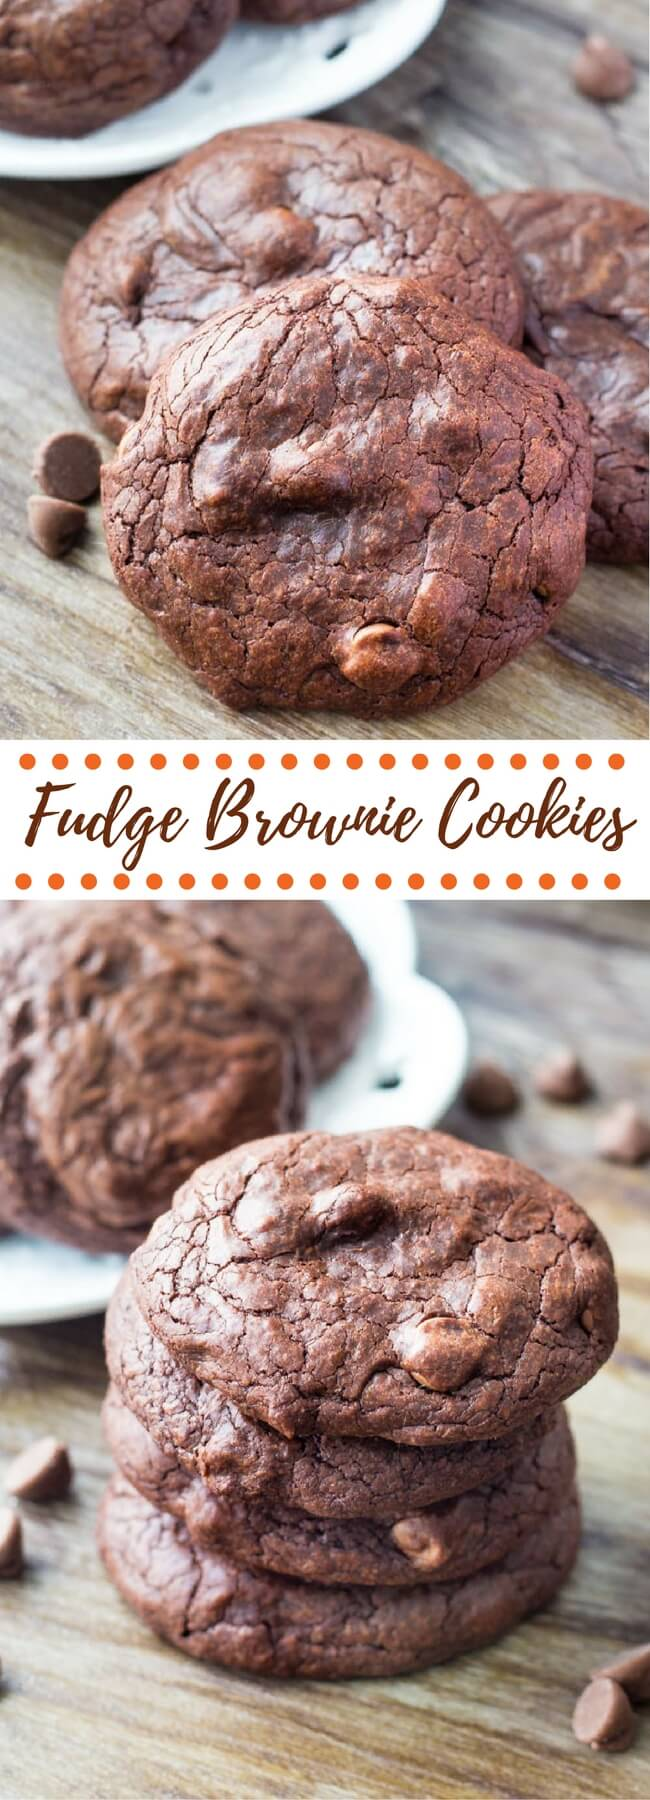 These Fudge Brownie Cookies have a rich chocolate flavor and super fudgy texture. Like your favorite brownies in cookie form!